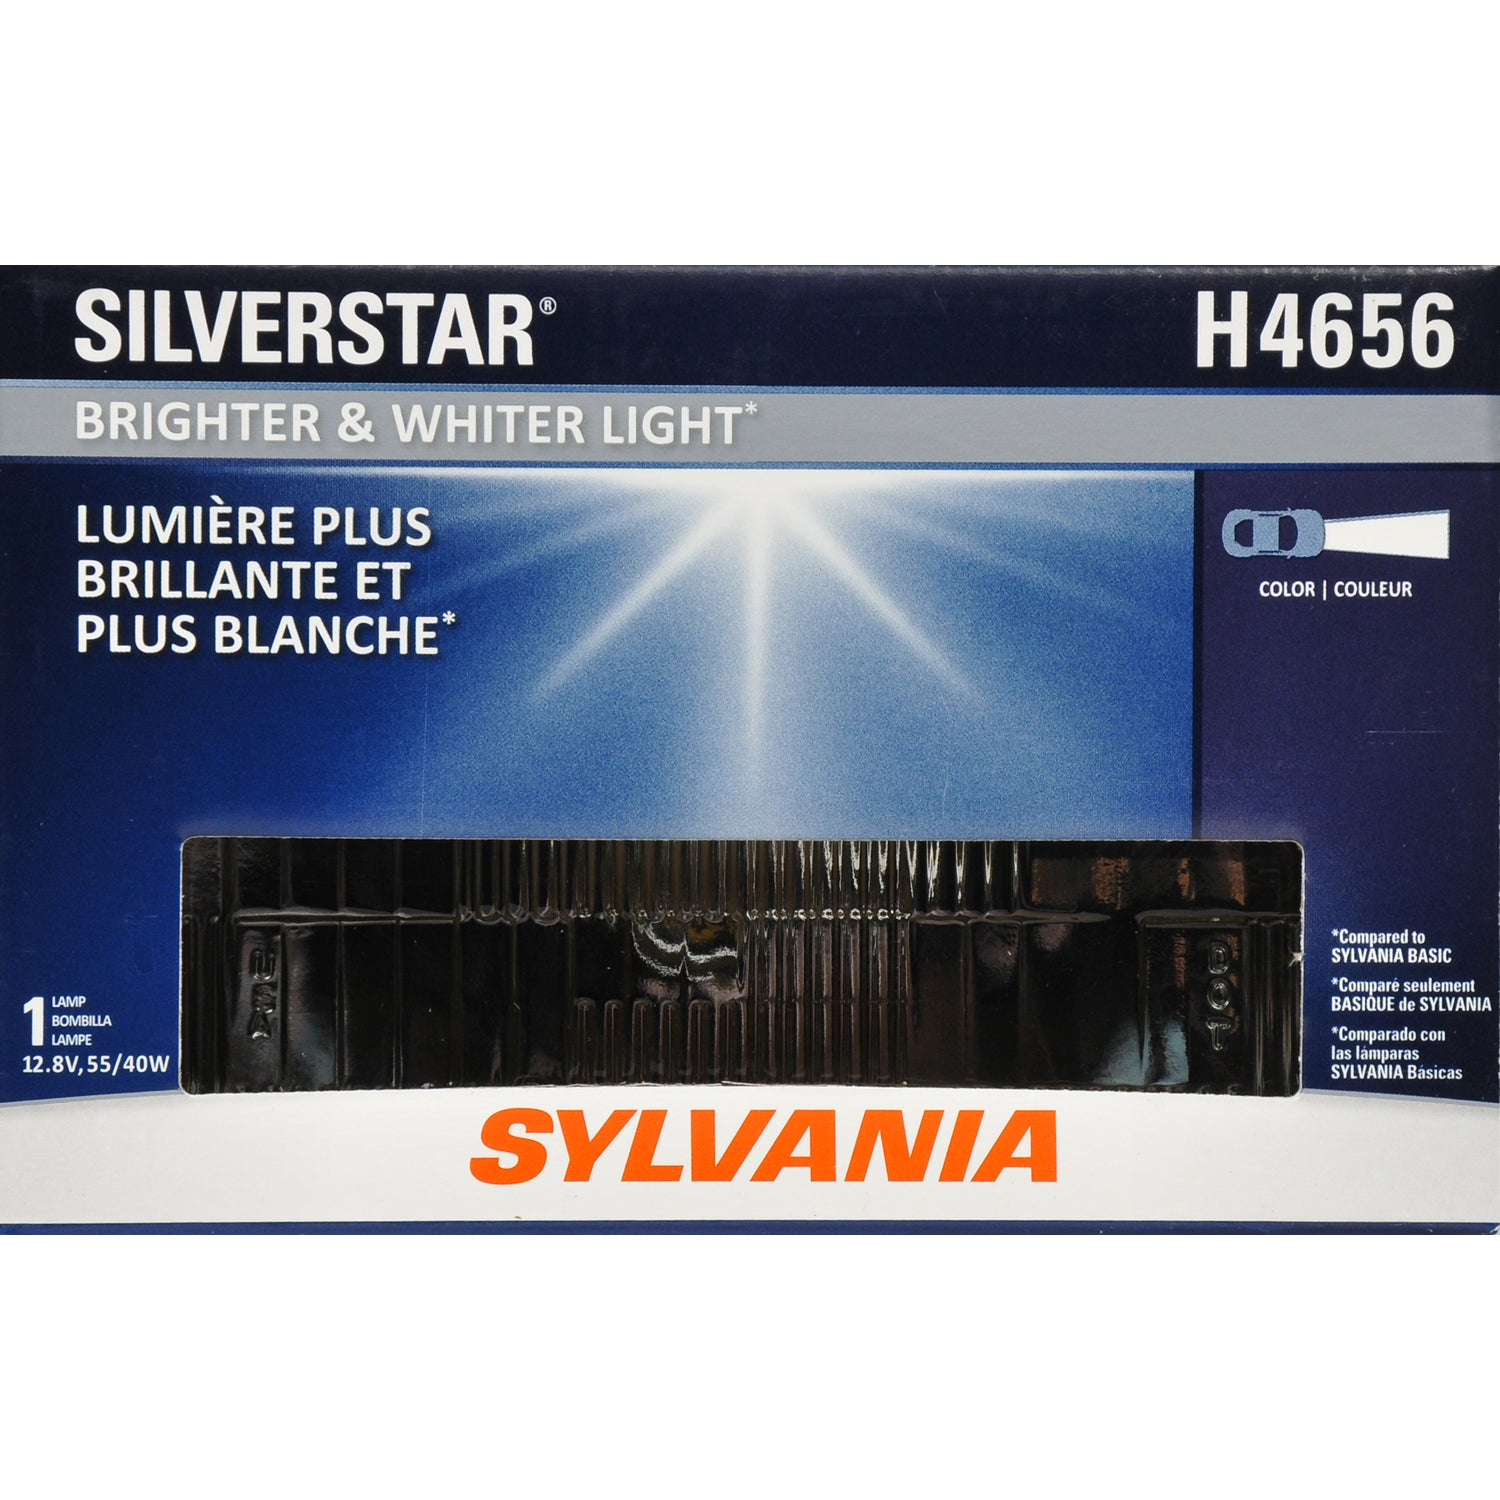 SYLVANIA H4656 2A1 SilverStar High Performance Halogen Headlight 100x165